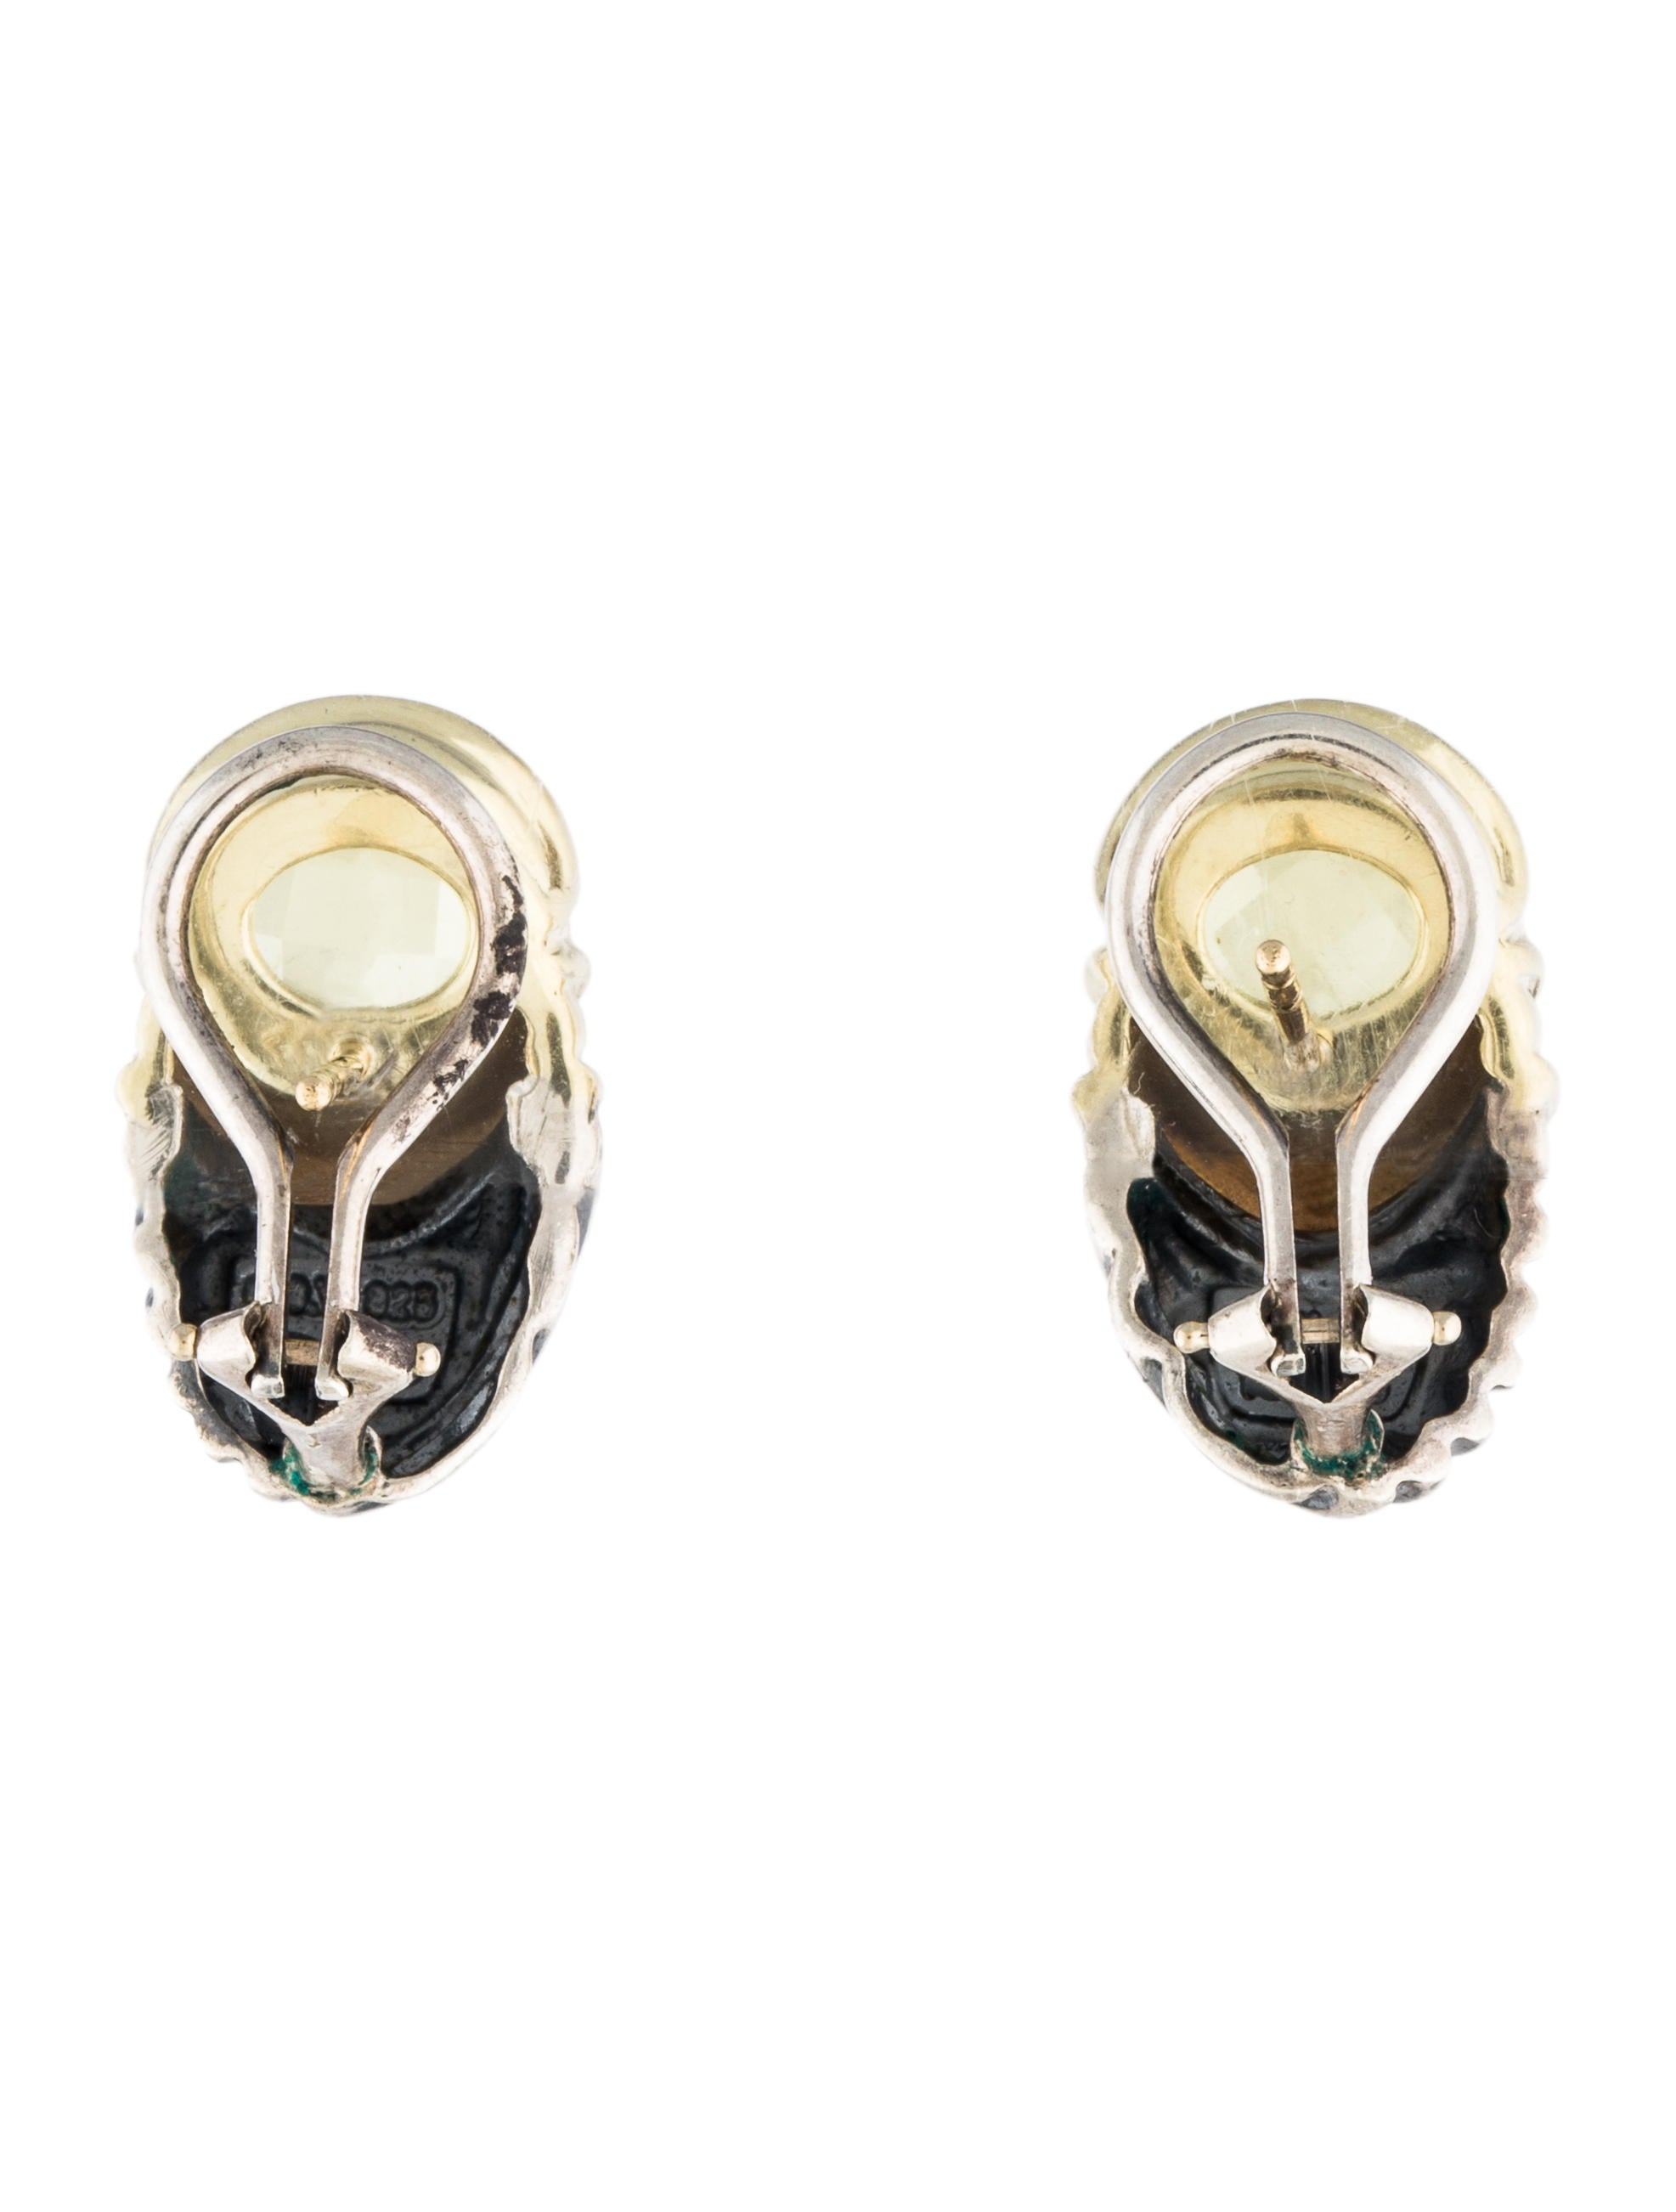 david yurman earrings sale david yurman citrine shrimp earrings earrings dvy41953 4179